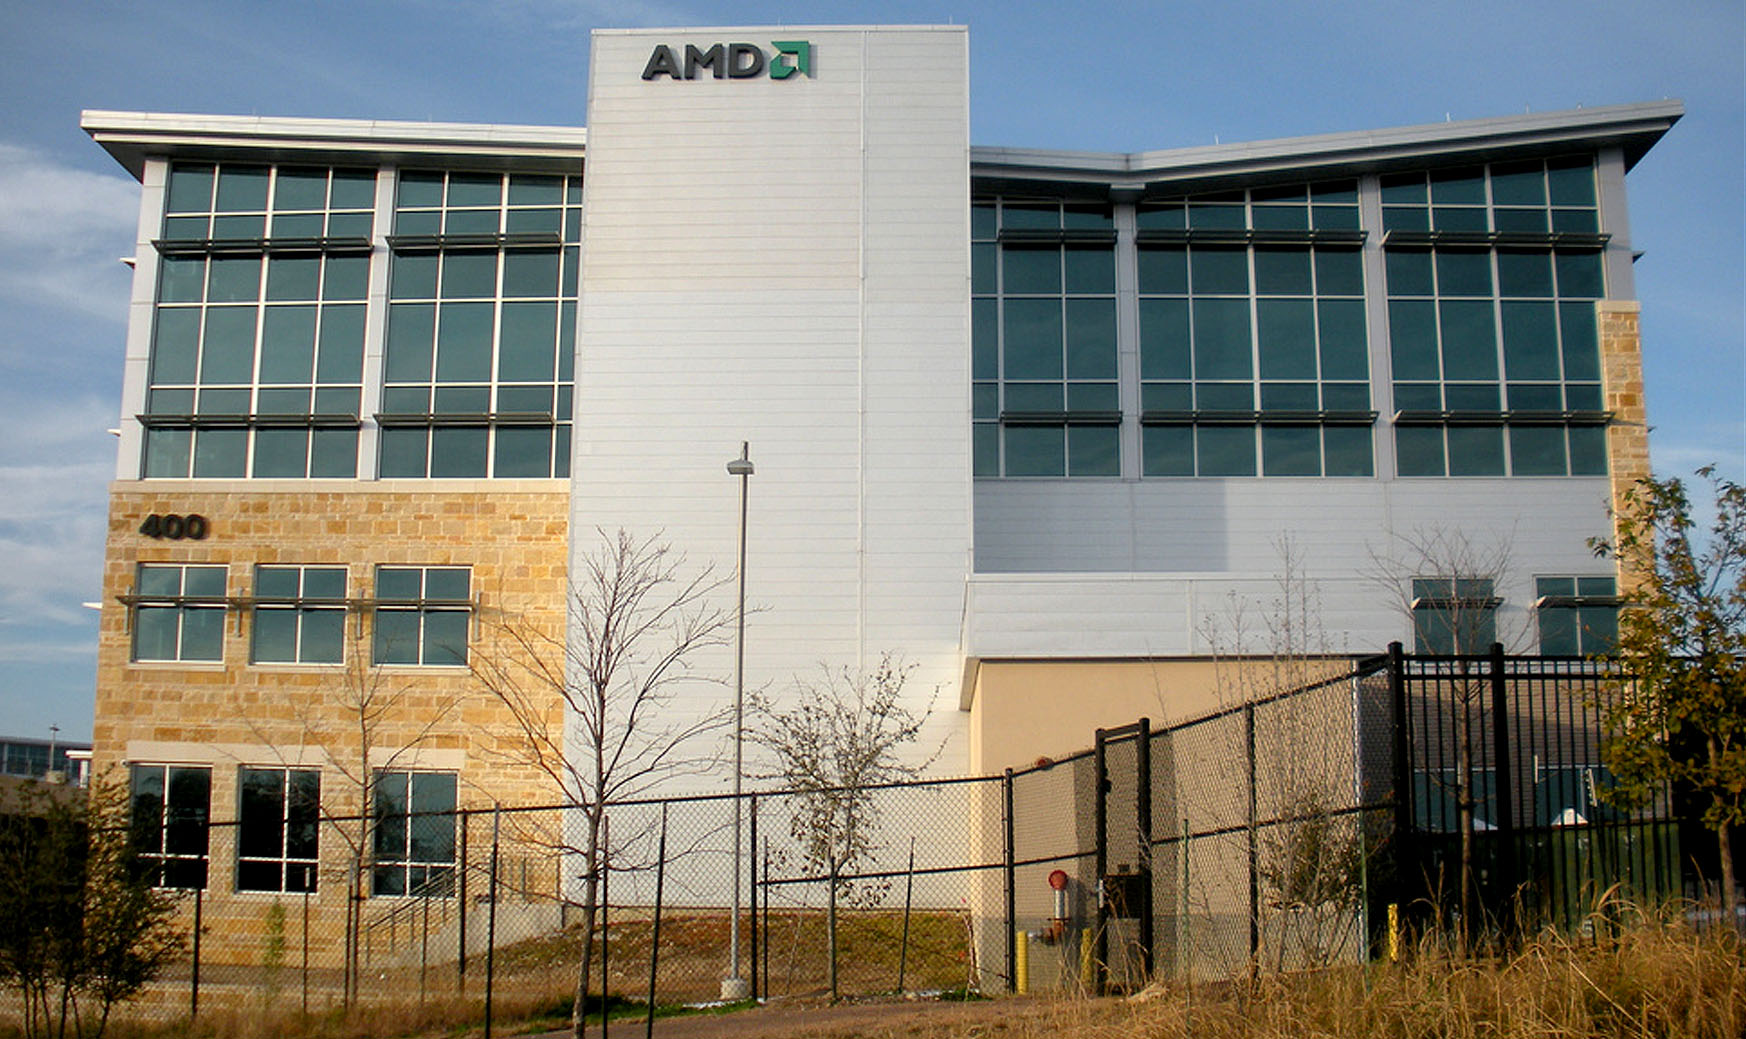 AMD South Campus